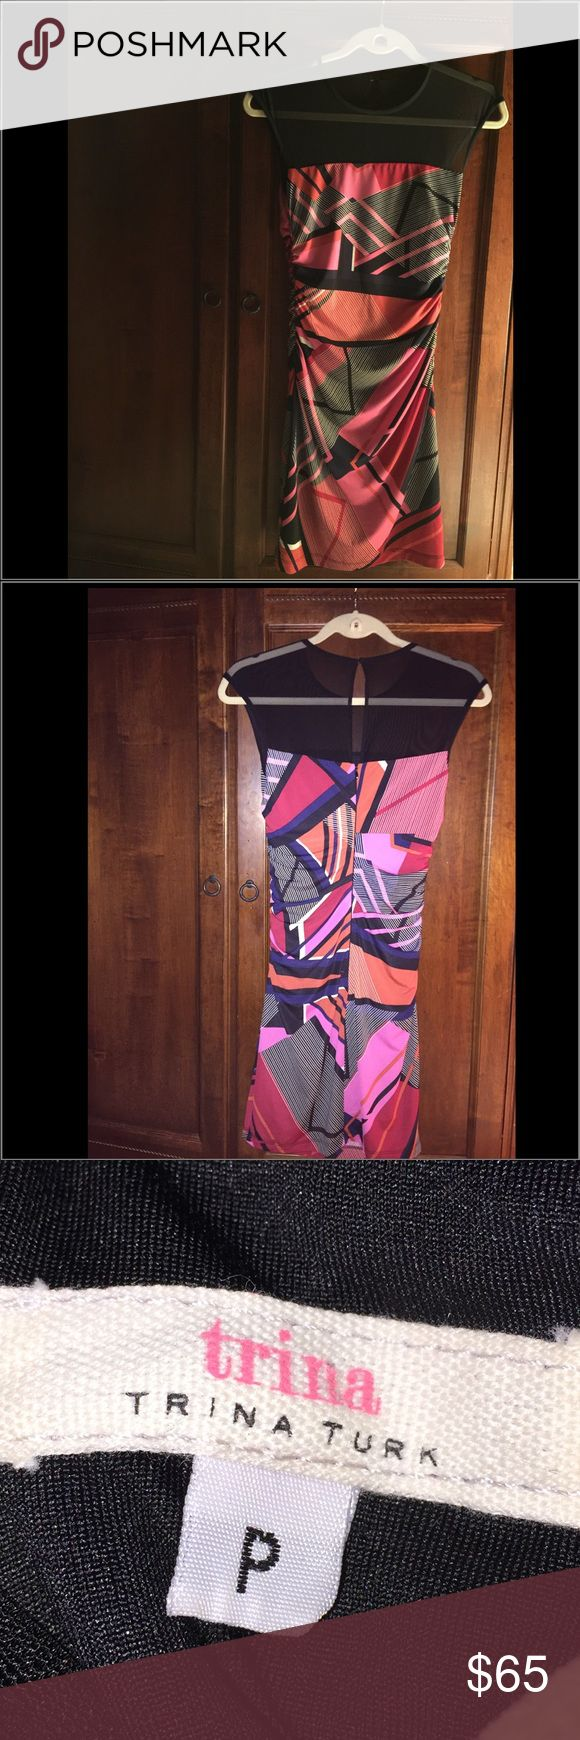 Gorgeous dress by Trina Turk Lined zip up with mesh sheer at top of dress. Very flattering and the colors are amazing. You will stand out beautifully❤️❤️❤️ gently worn 1x Trina Turk Dresses Midi